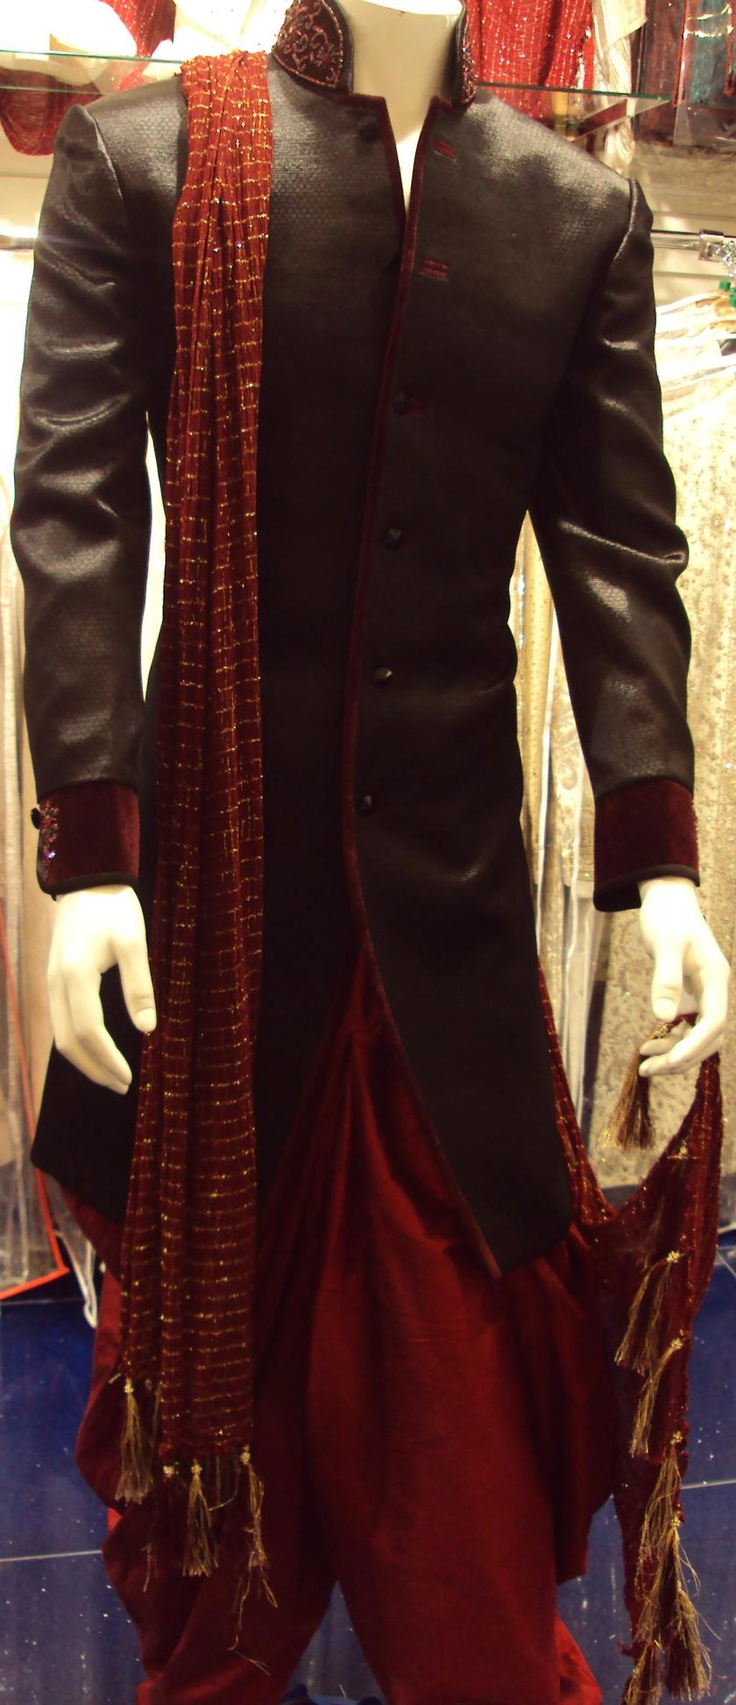 Men's sherwani. Black brockade with maroon piping. I'd wear the sherwani with churidar bottoms instead of the shalwar.